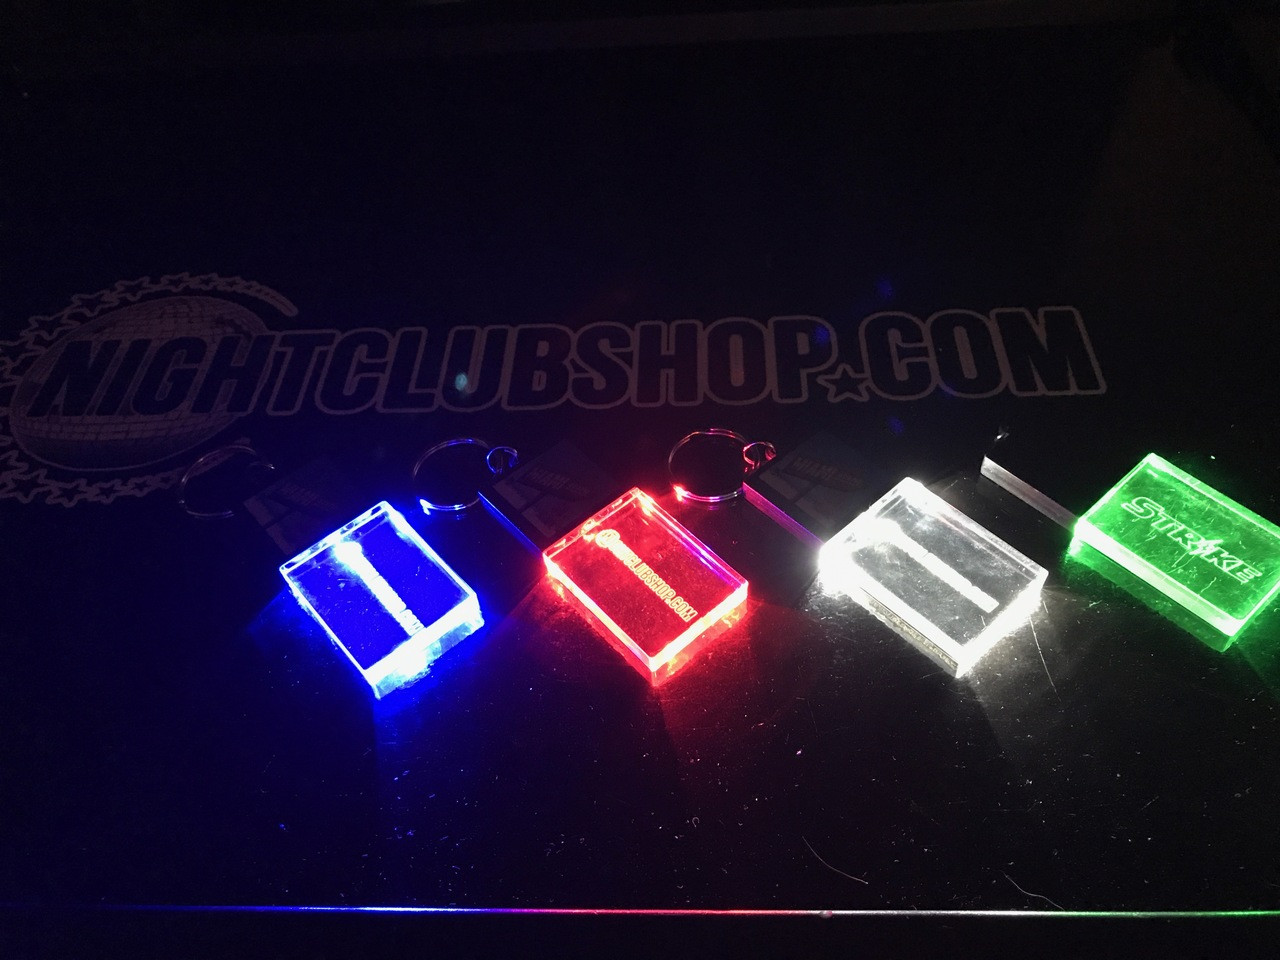 Light up,LED,Keychain,Key,chain,LED keychain, custom, BEAM, dual, print,engraved, logo,text, laser engraved,personalized,promo,merch,fundraiser,nightclub,fund raiser, sponsor,charity, drive